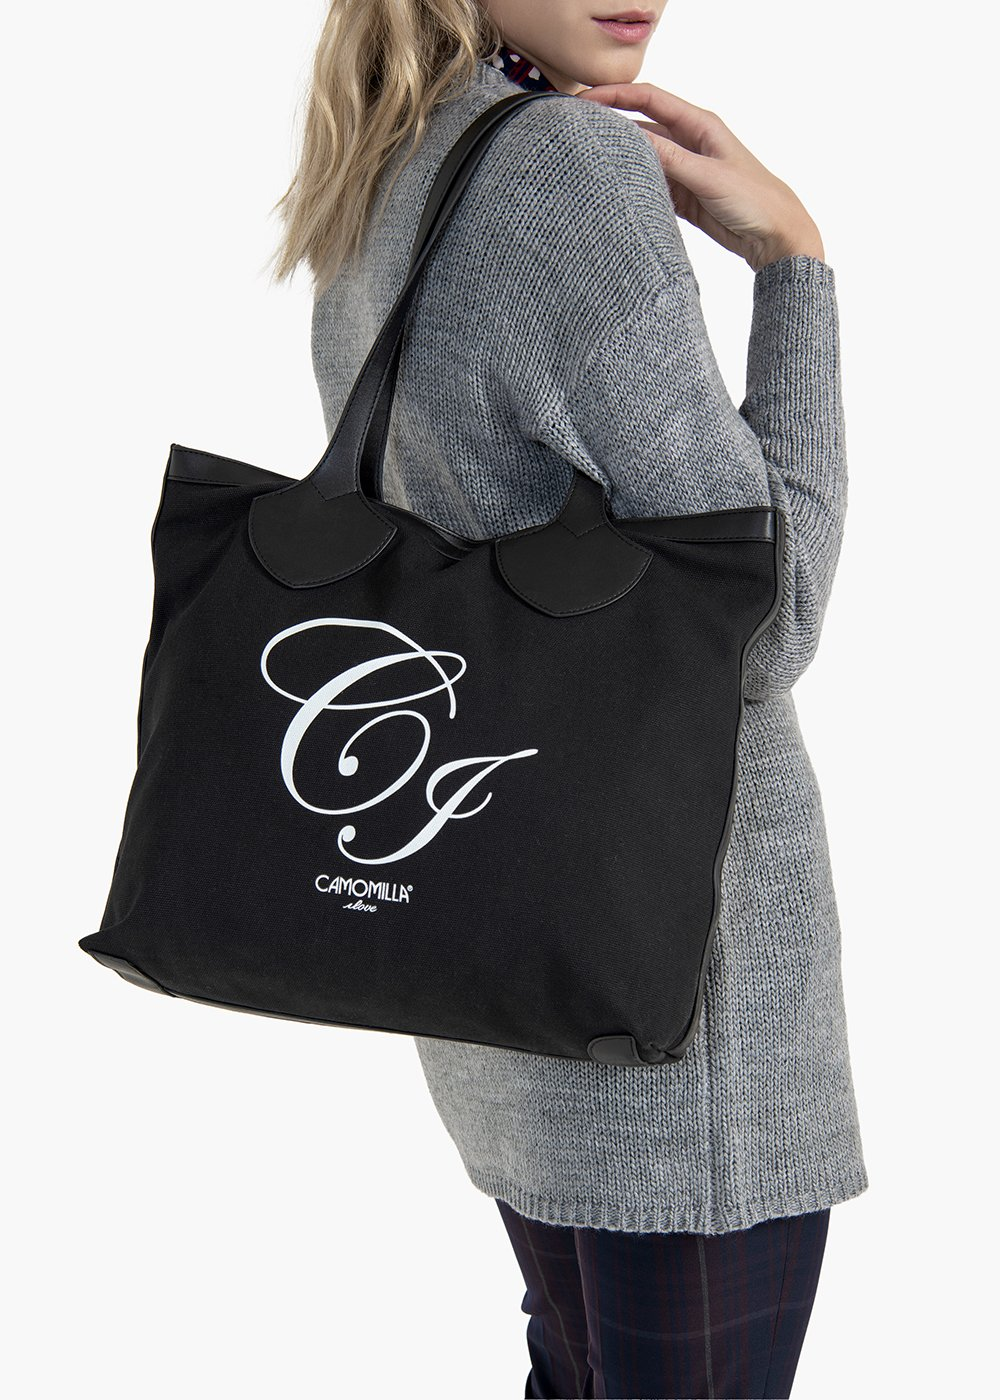 Brenda shopping bag in canvas and eco leather with CI logo - Black - Woman